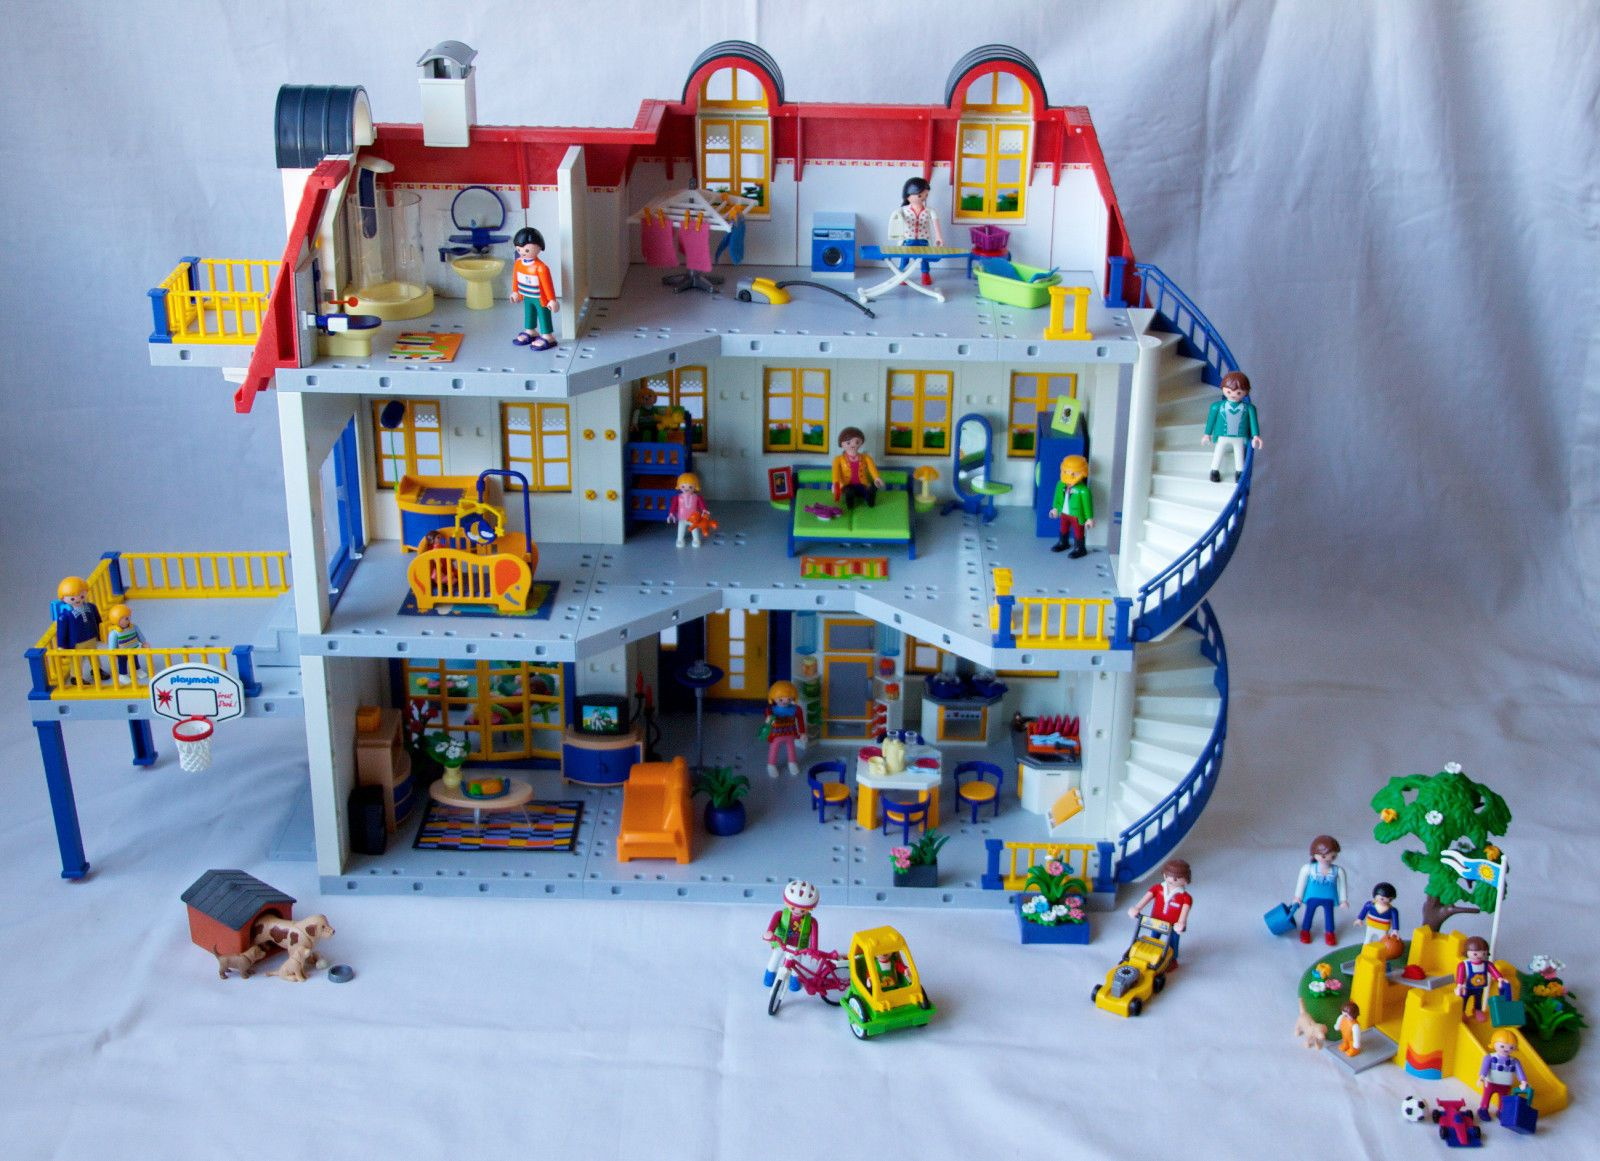 Playmobil 3965 modern house extension floor 7337 sets 3235 ...